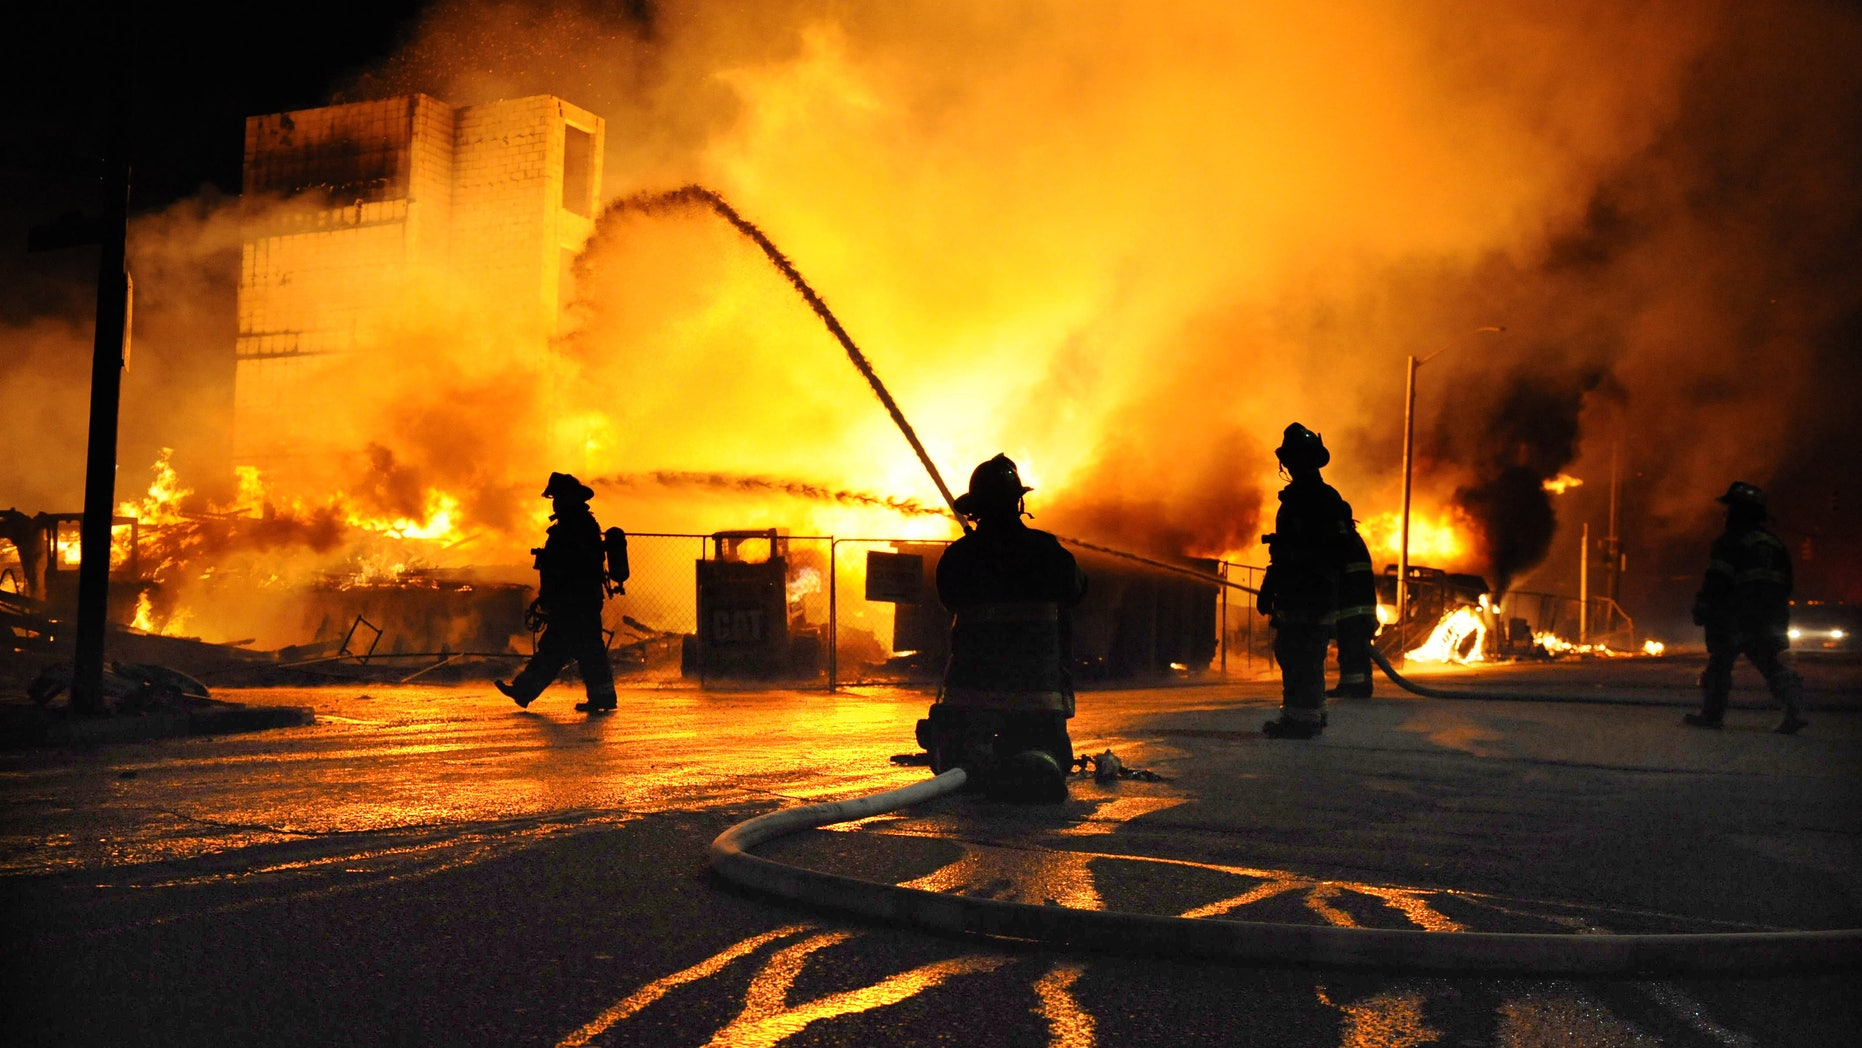 Baltimore firefighters battle a three-alarm fire Monday, April 27, 2015,  at a senior living facility under construction at Federal and Chester Streets in East Baltimore.